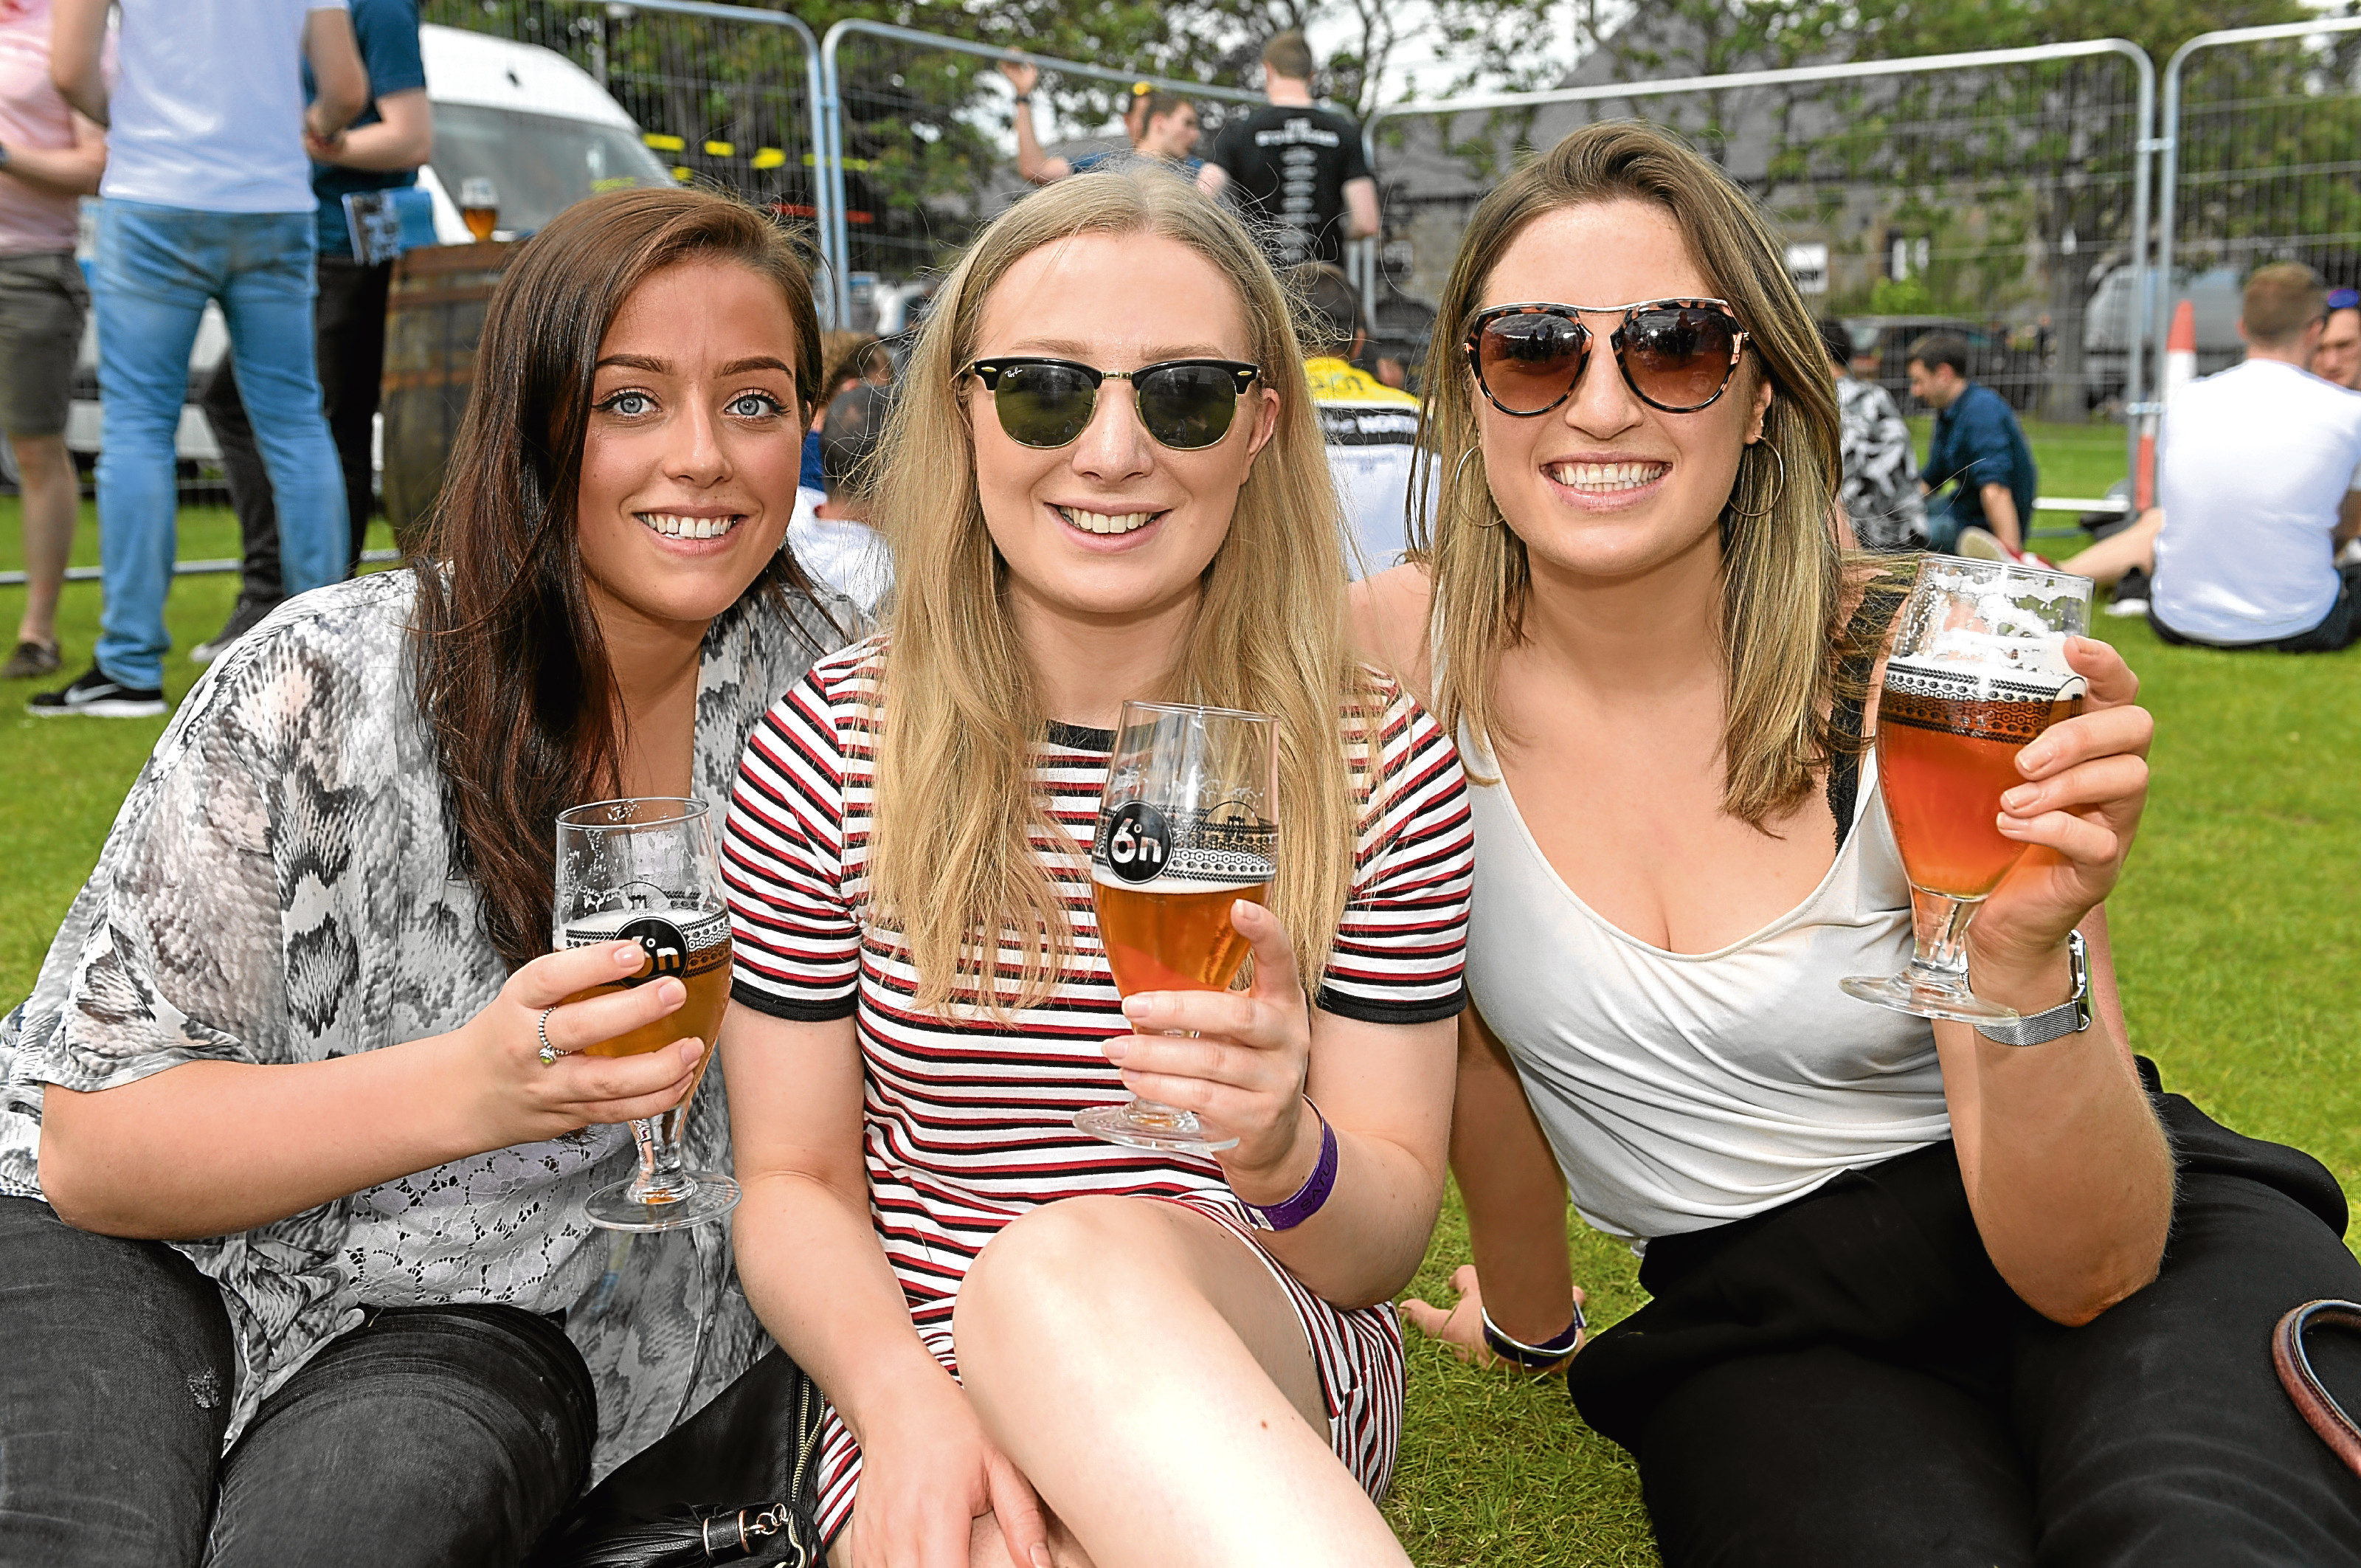 From left, Keri Campbell, Laura Syme and Rachel Scott at the Midsummer Beer Happening.